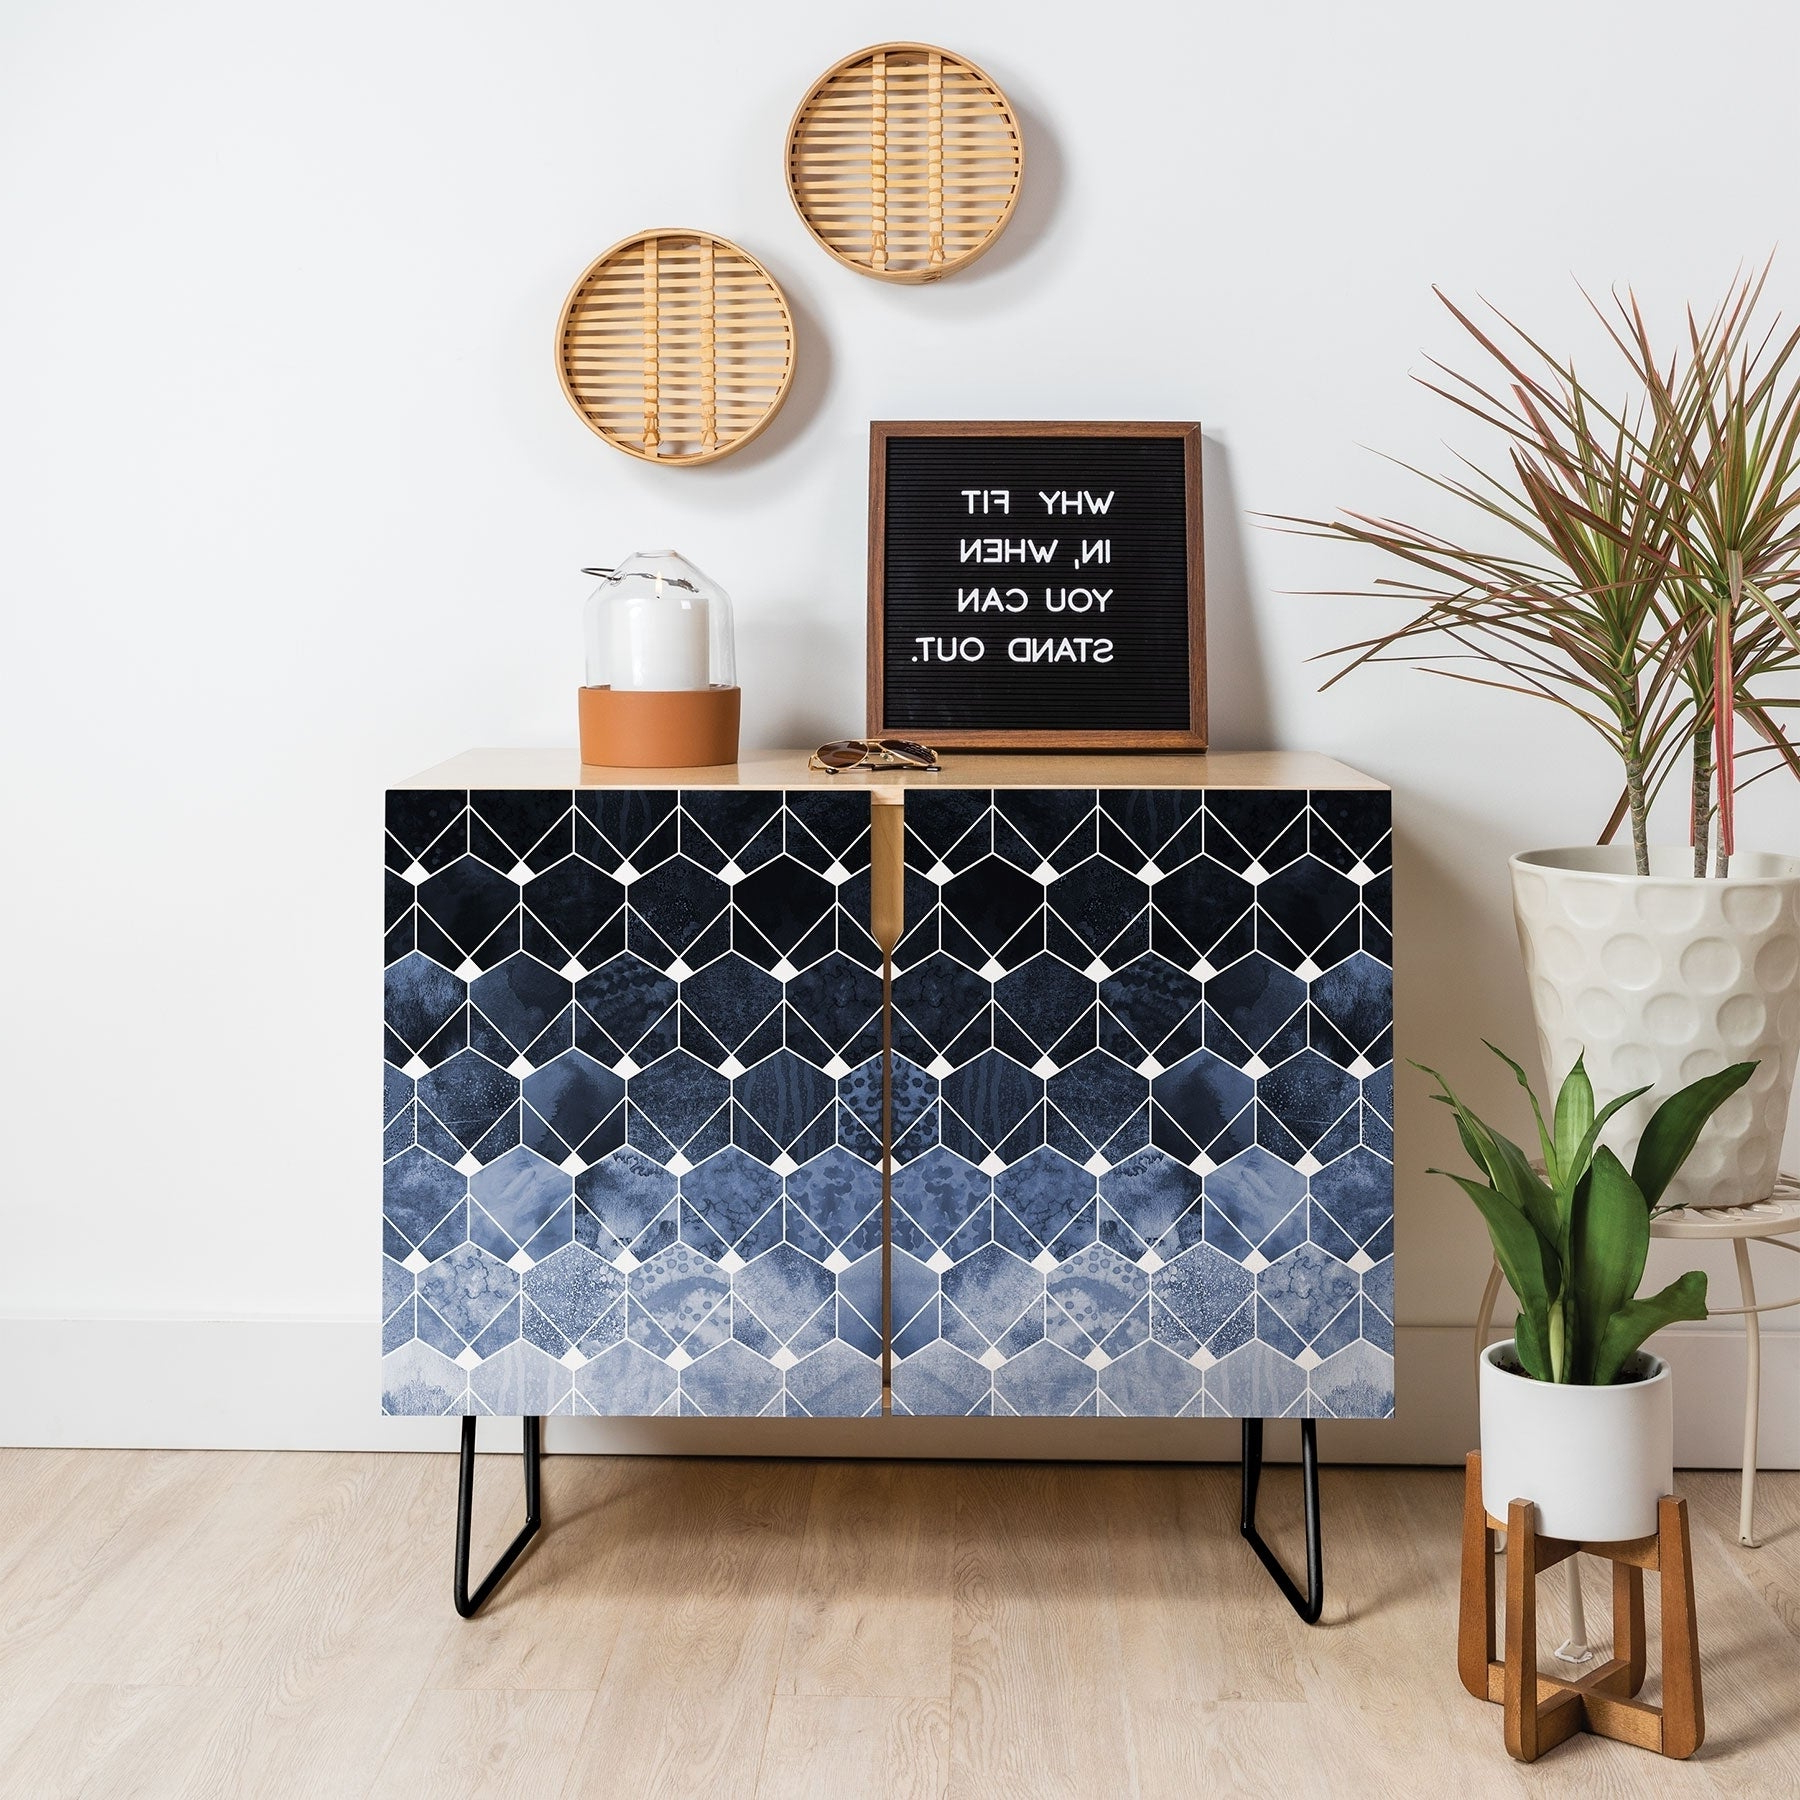 Deny Designs Blue Hexagons And Diamonds Credenza (Birch Or Walnut, 2 Leg  Options) Within Blue Hexagons And Diamonds Credenzas (View 13 of 20)